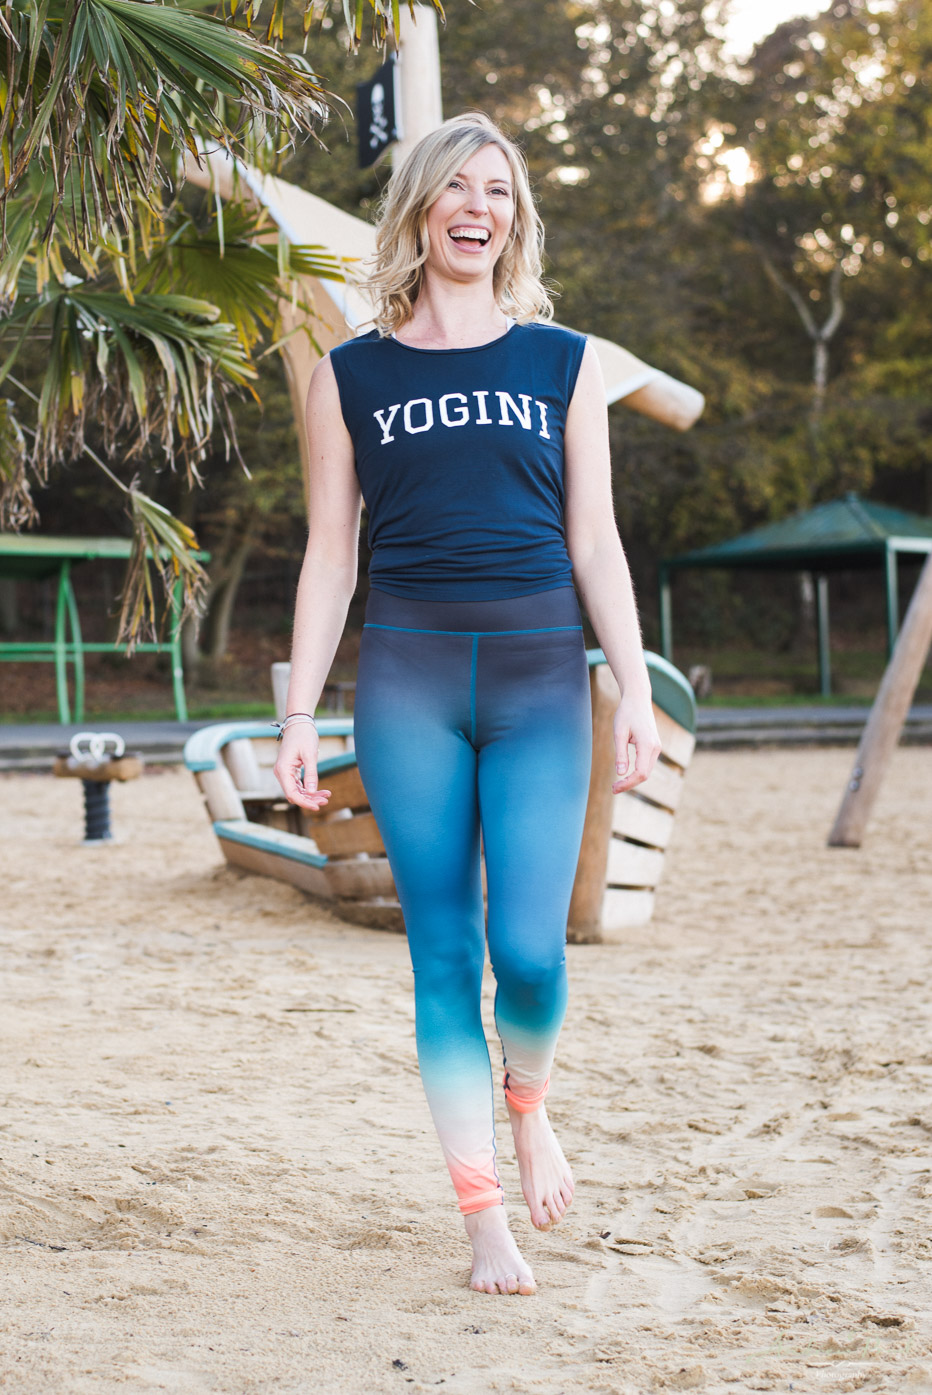 Blossom Yoga Wear Photoshoot, By Yoga Photographer Andrew